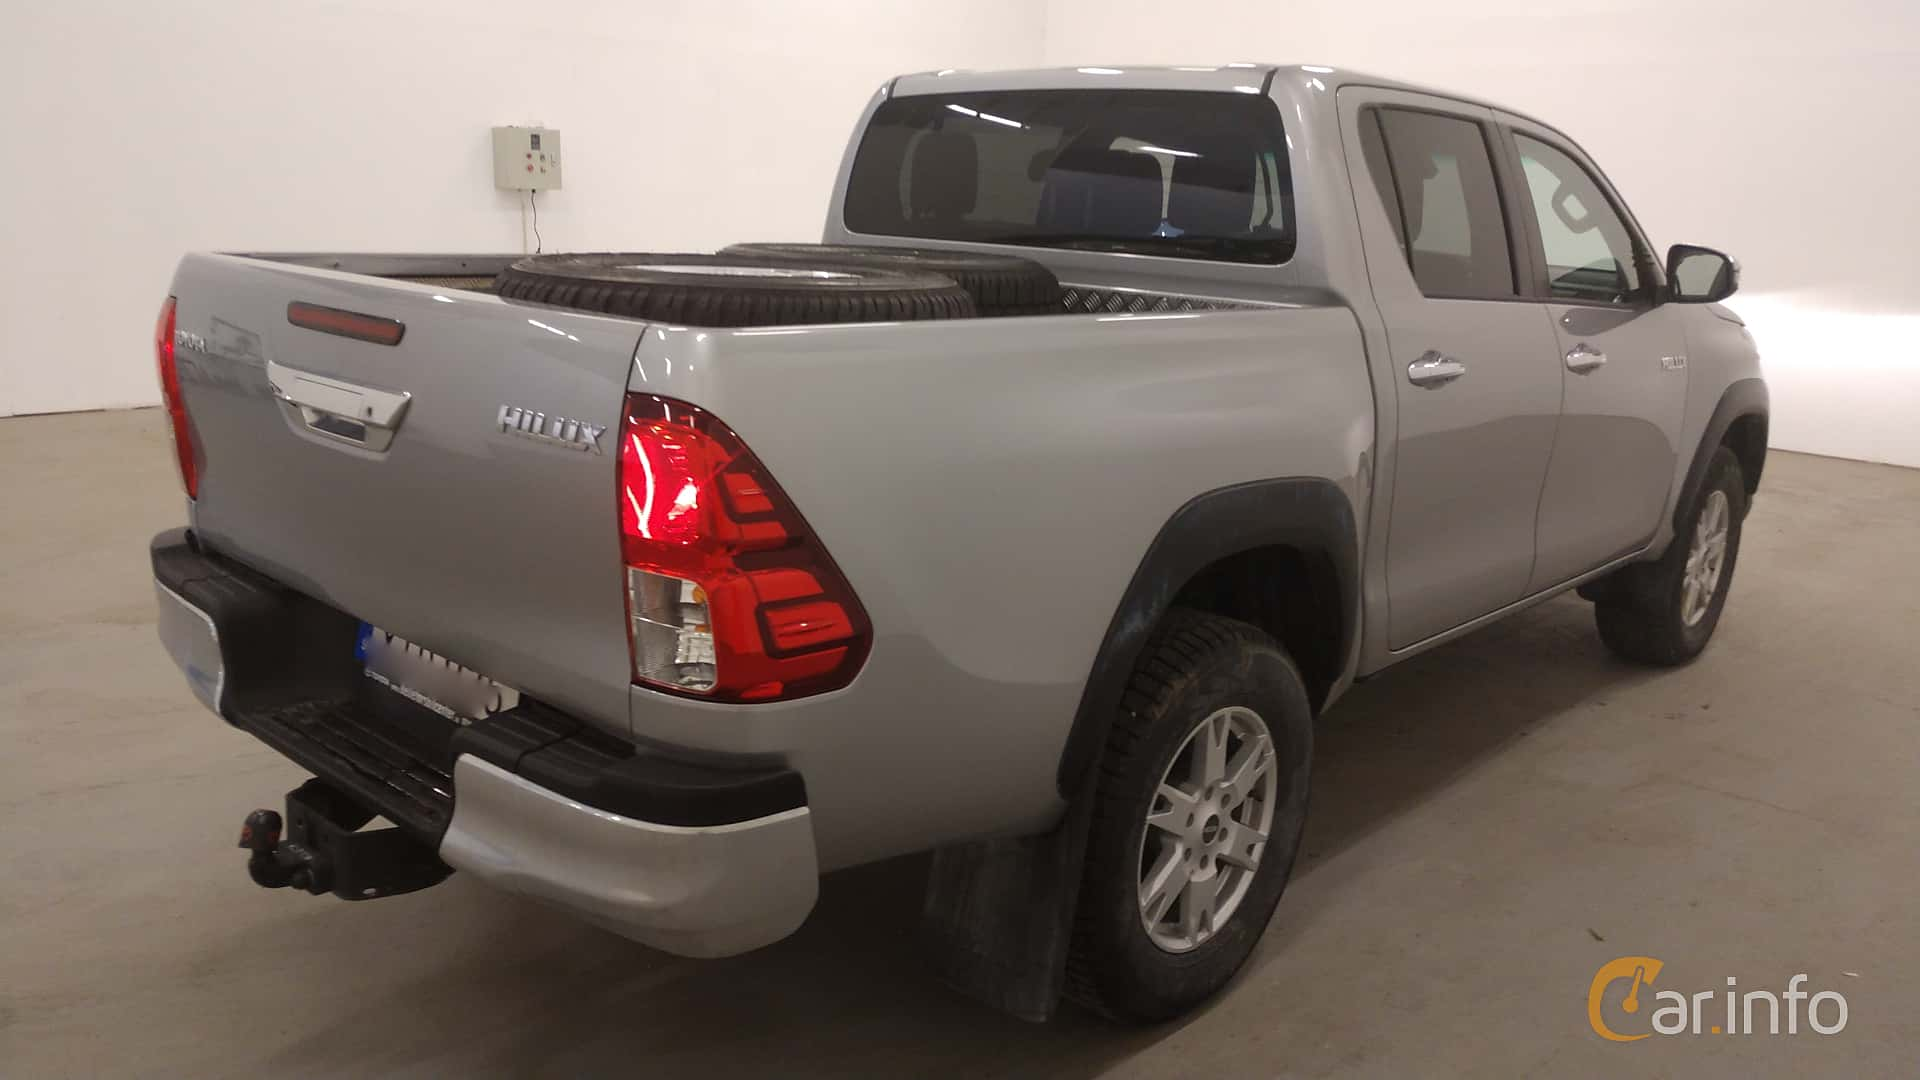 Toyota Hilux Double Cab 2.4 AWD Automatic, 150hp, 2018